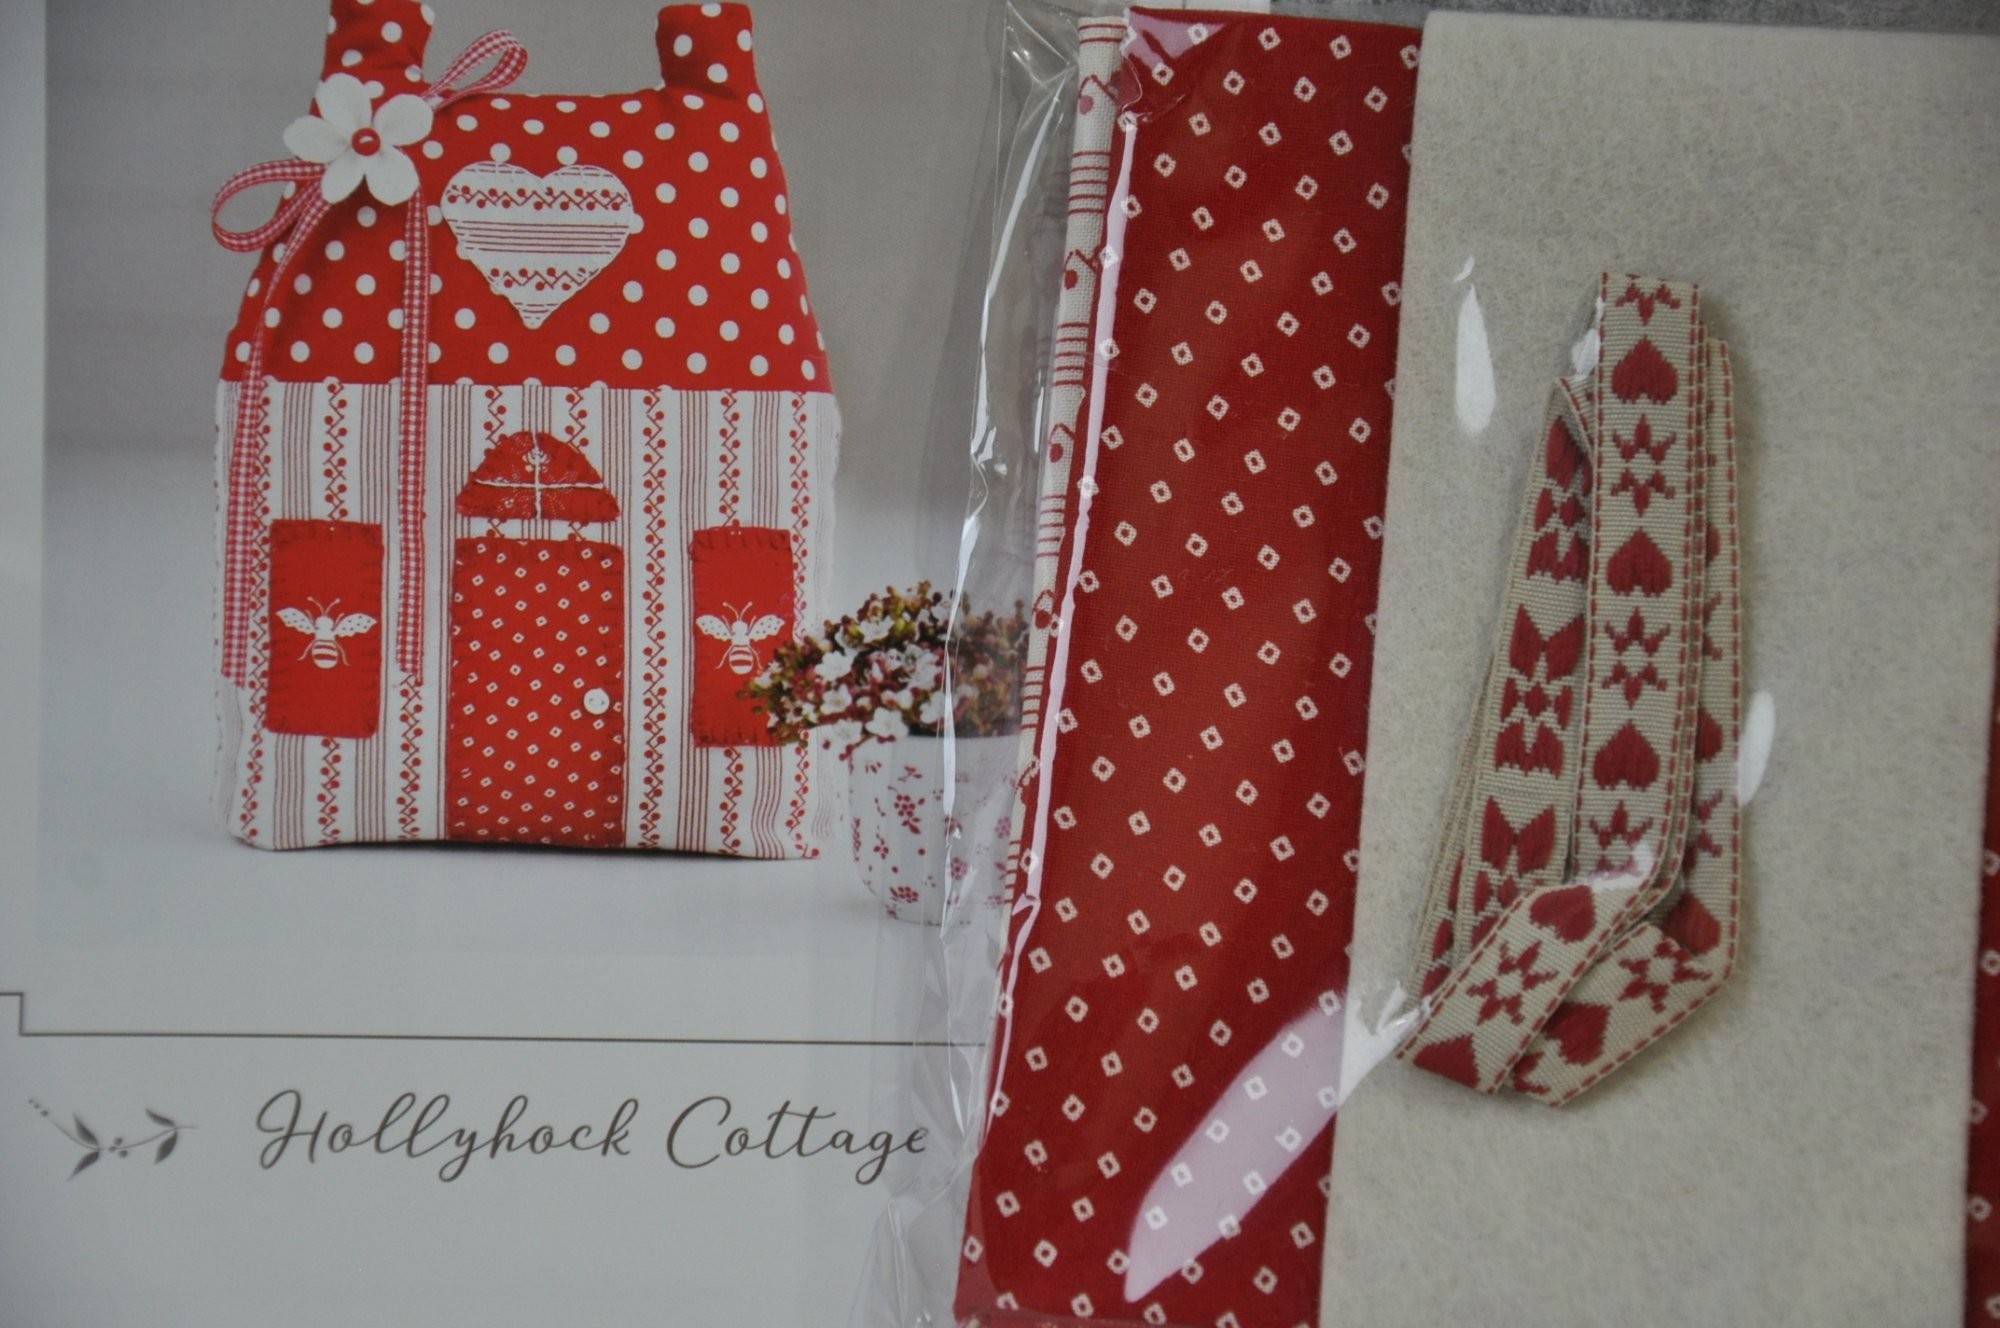 Hollyhock Cottage Kit